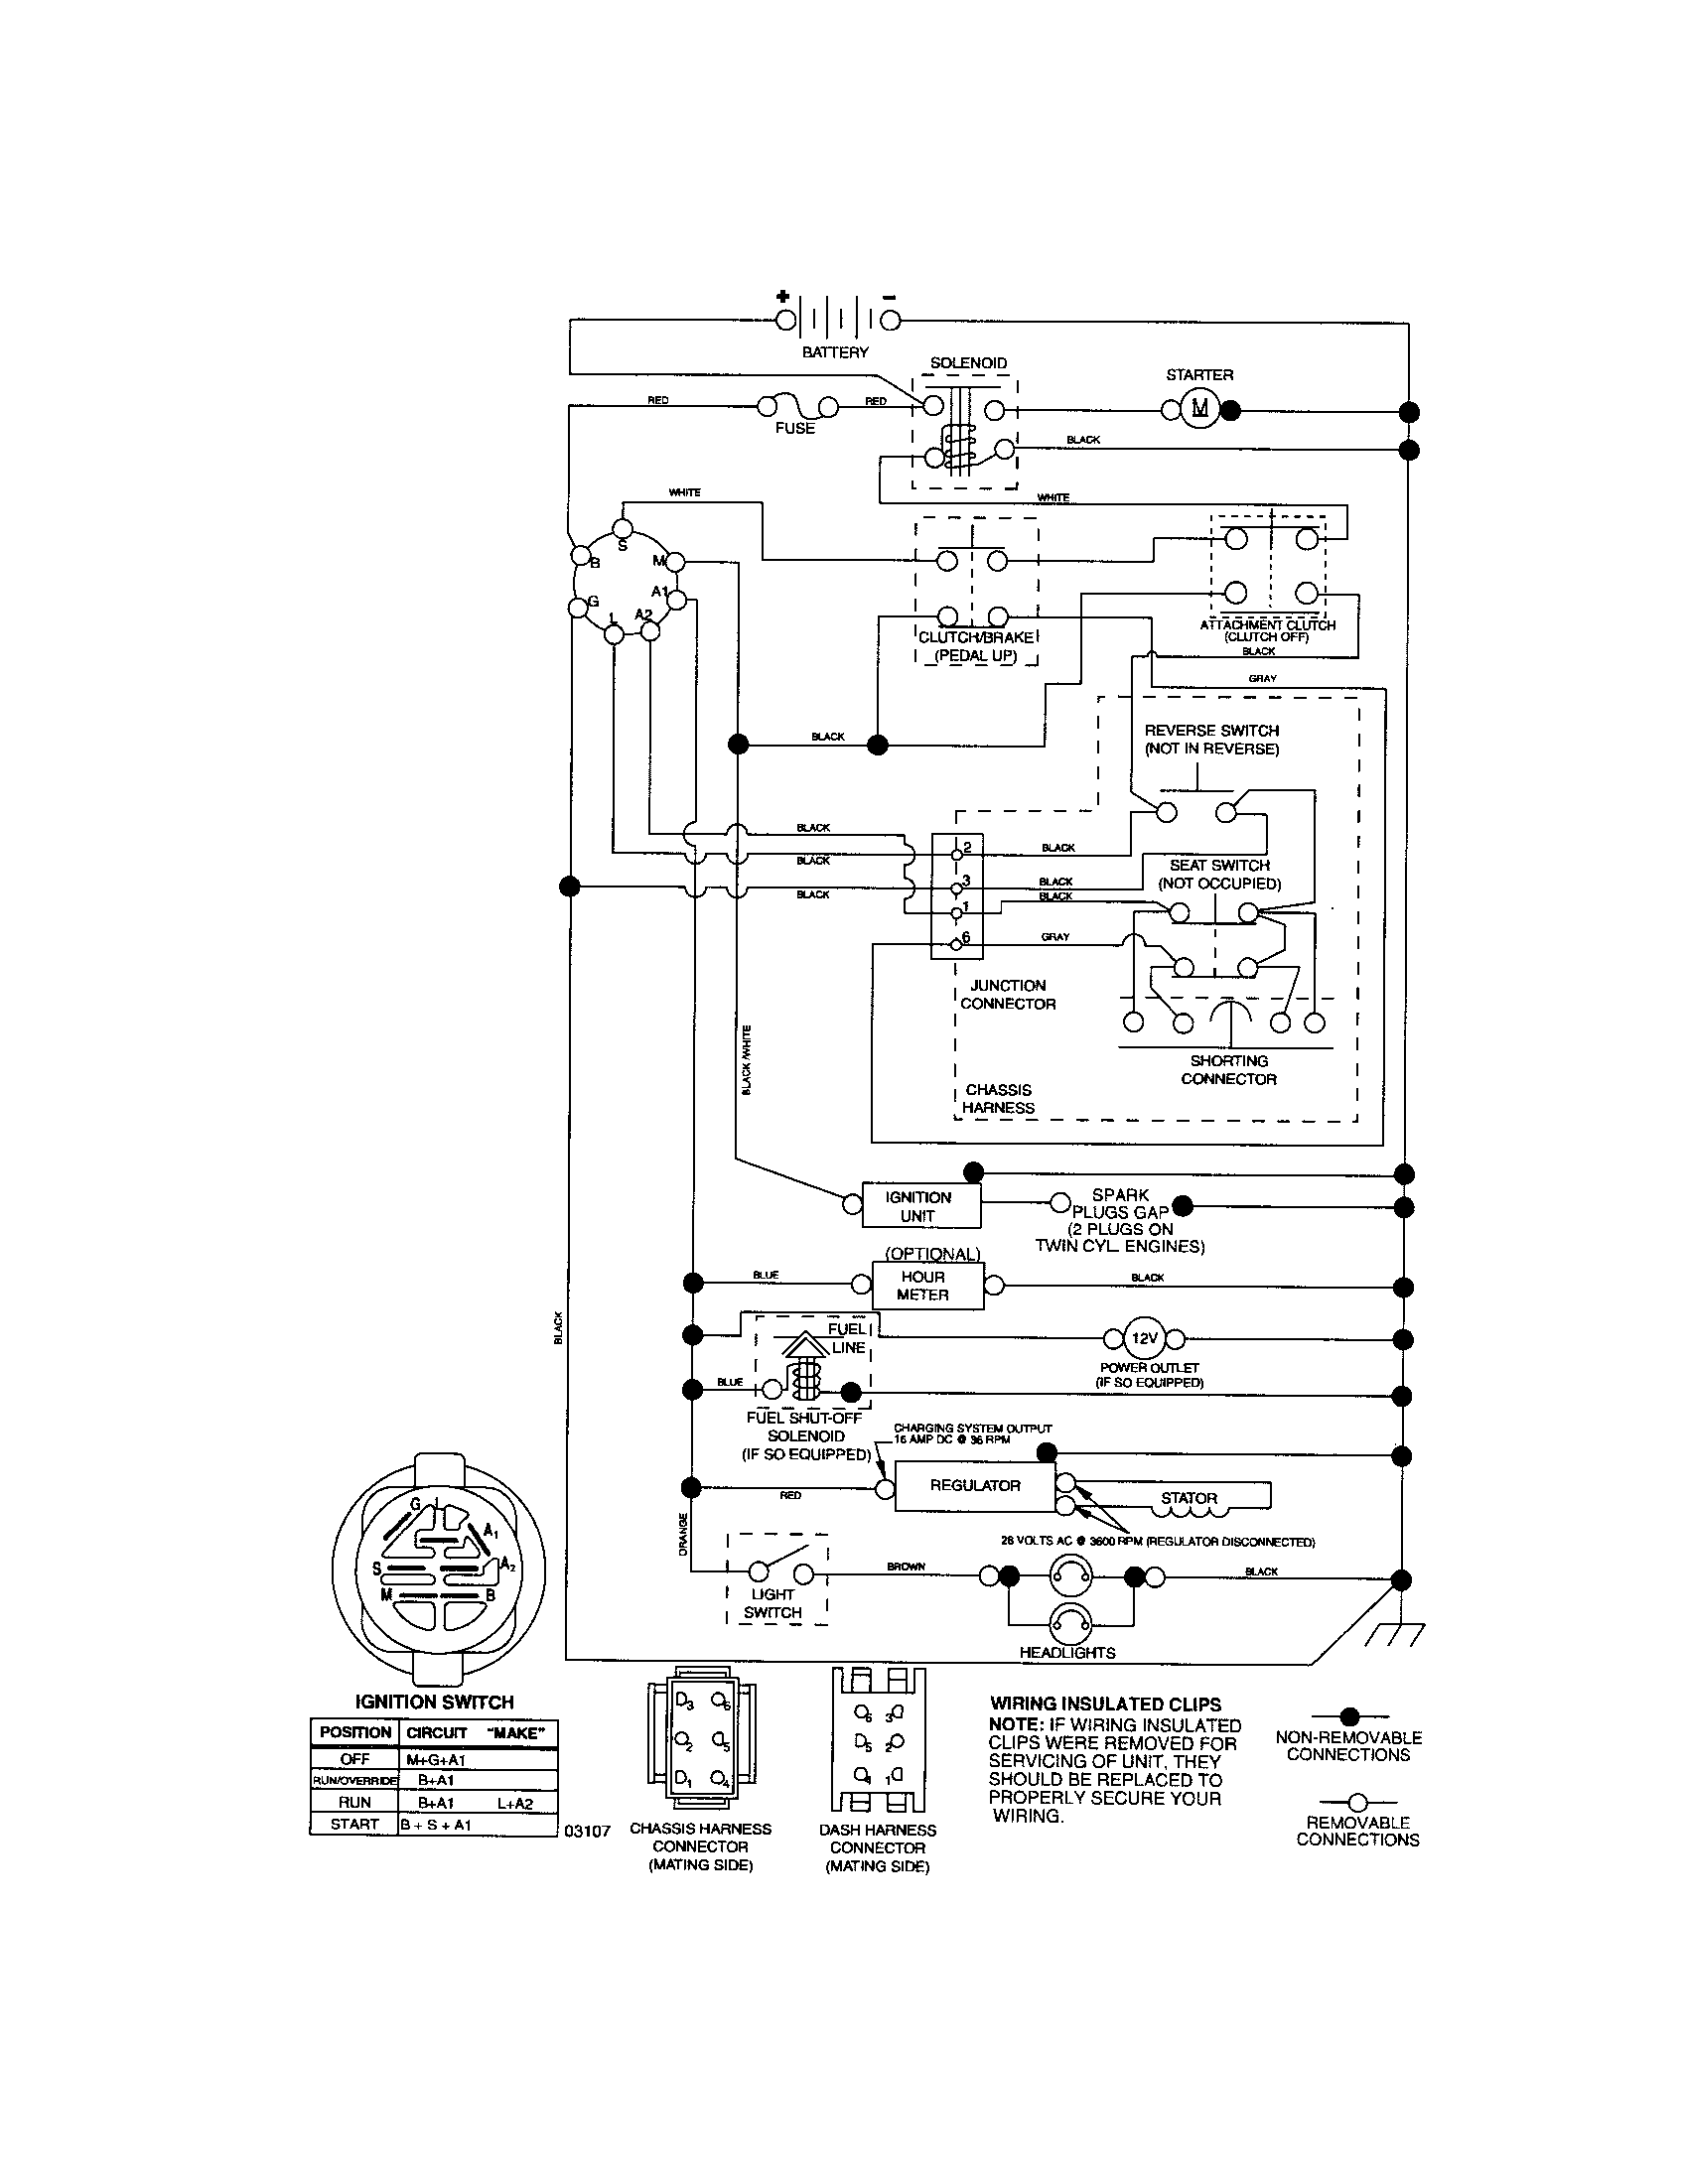 craftsman riding mower electrical diagram wiring diagram craftsman rh pinterest com lawn tractor wiring diagram riding lawn mower wiring diagram